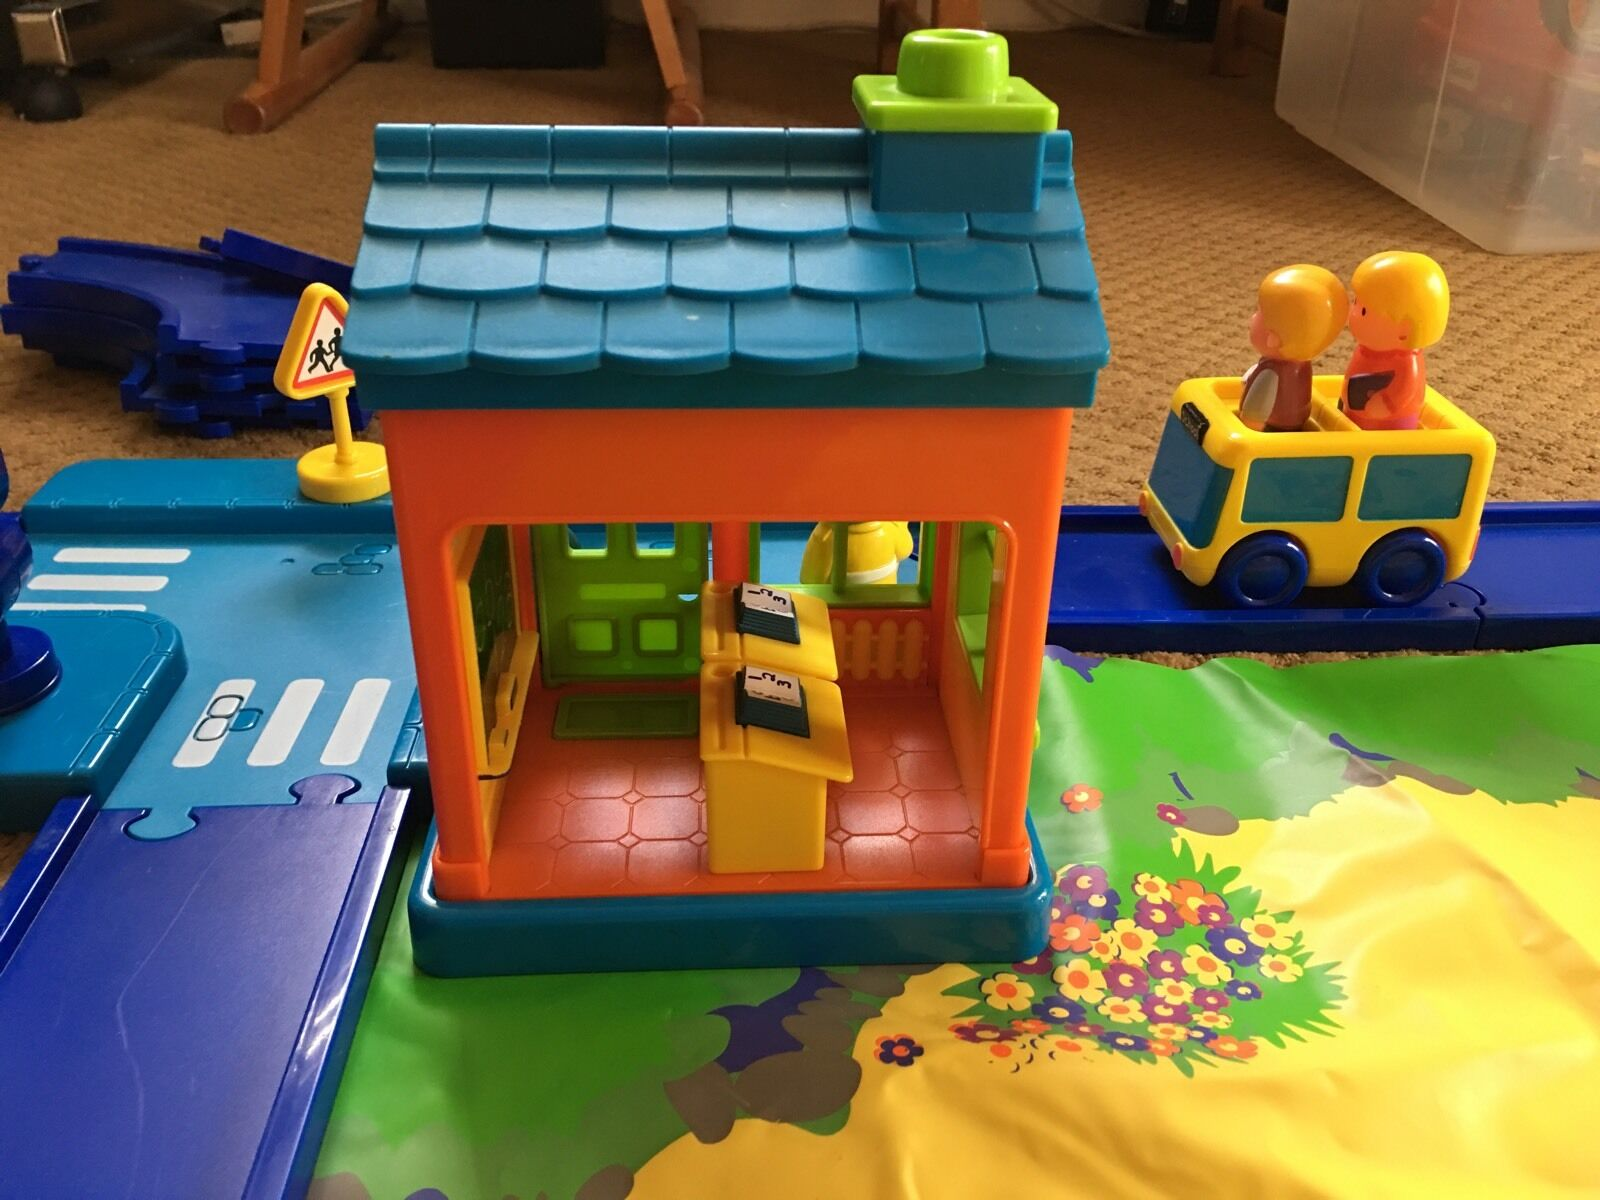 Toy imagination play little people people people  I Play  village w house school farm bus car 595b32